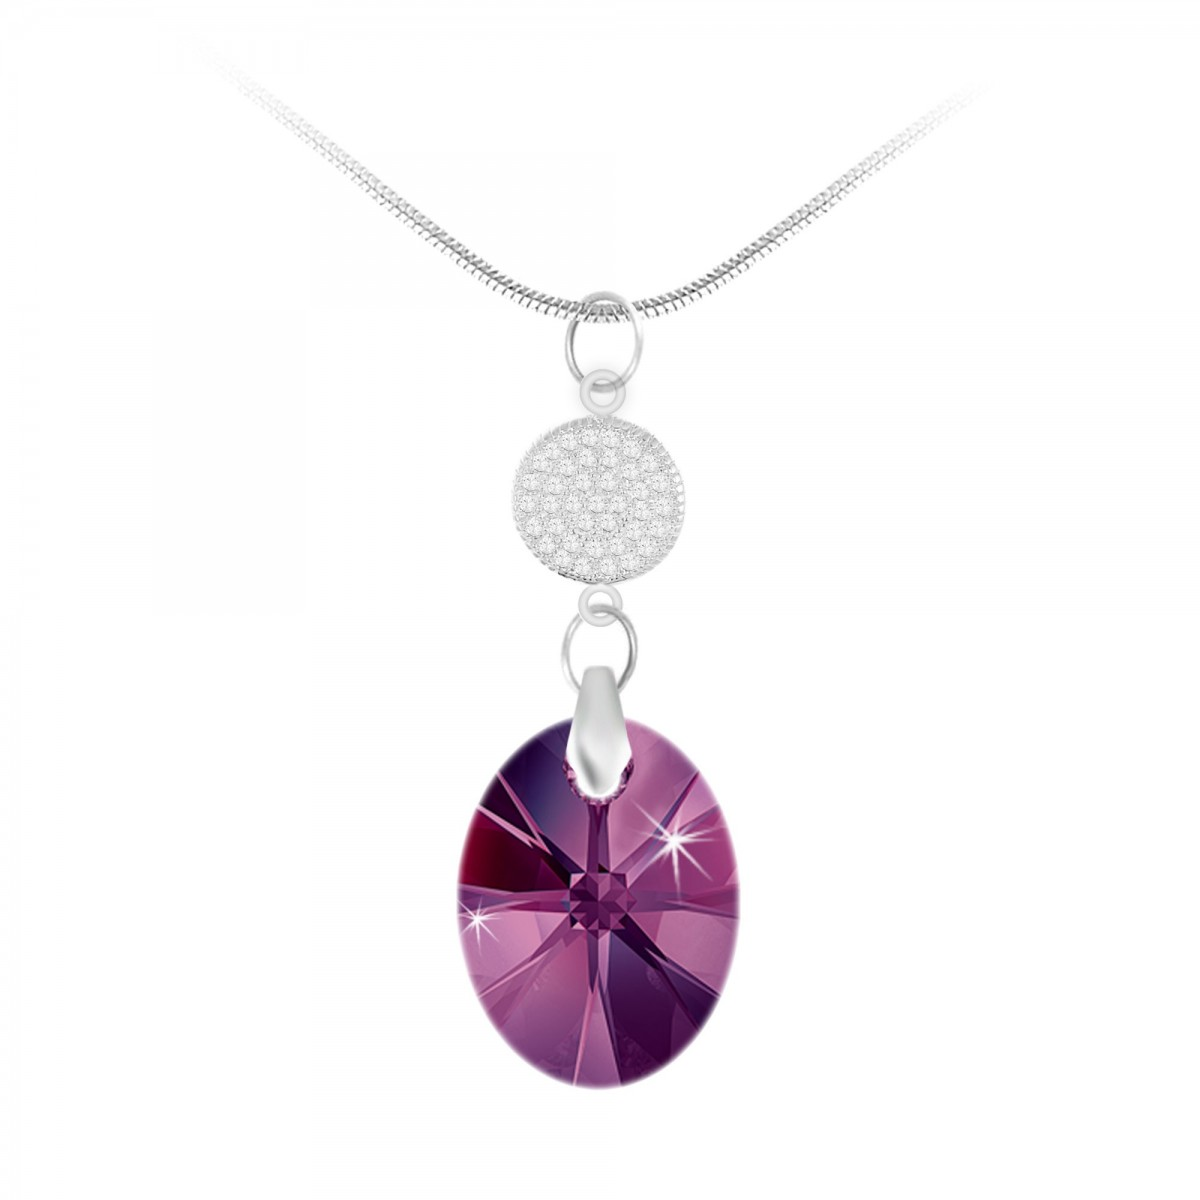 BS049-SN032-AMET Collier argenté So Charm made with crystals from Swarovski amethyst